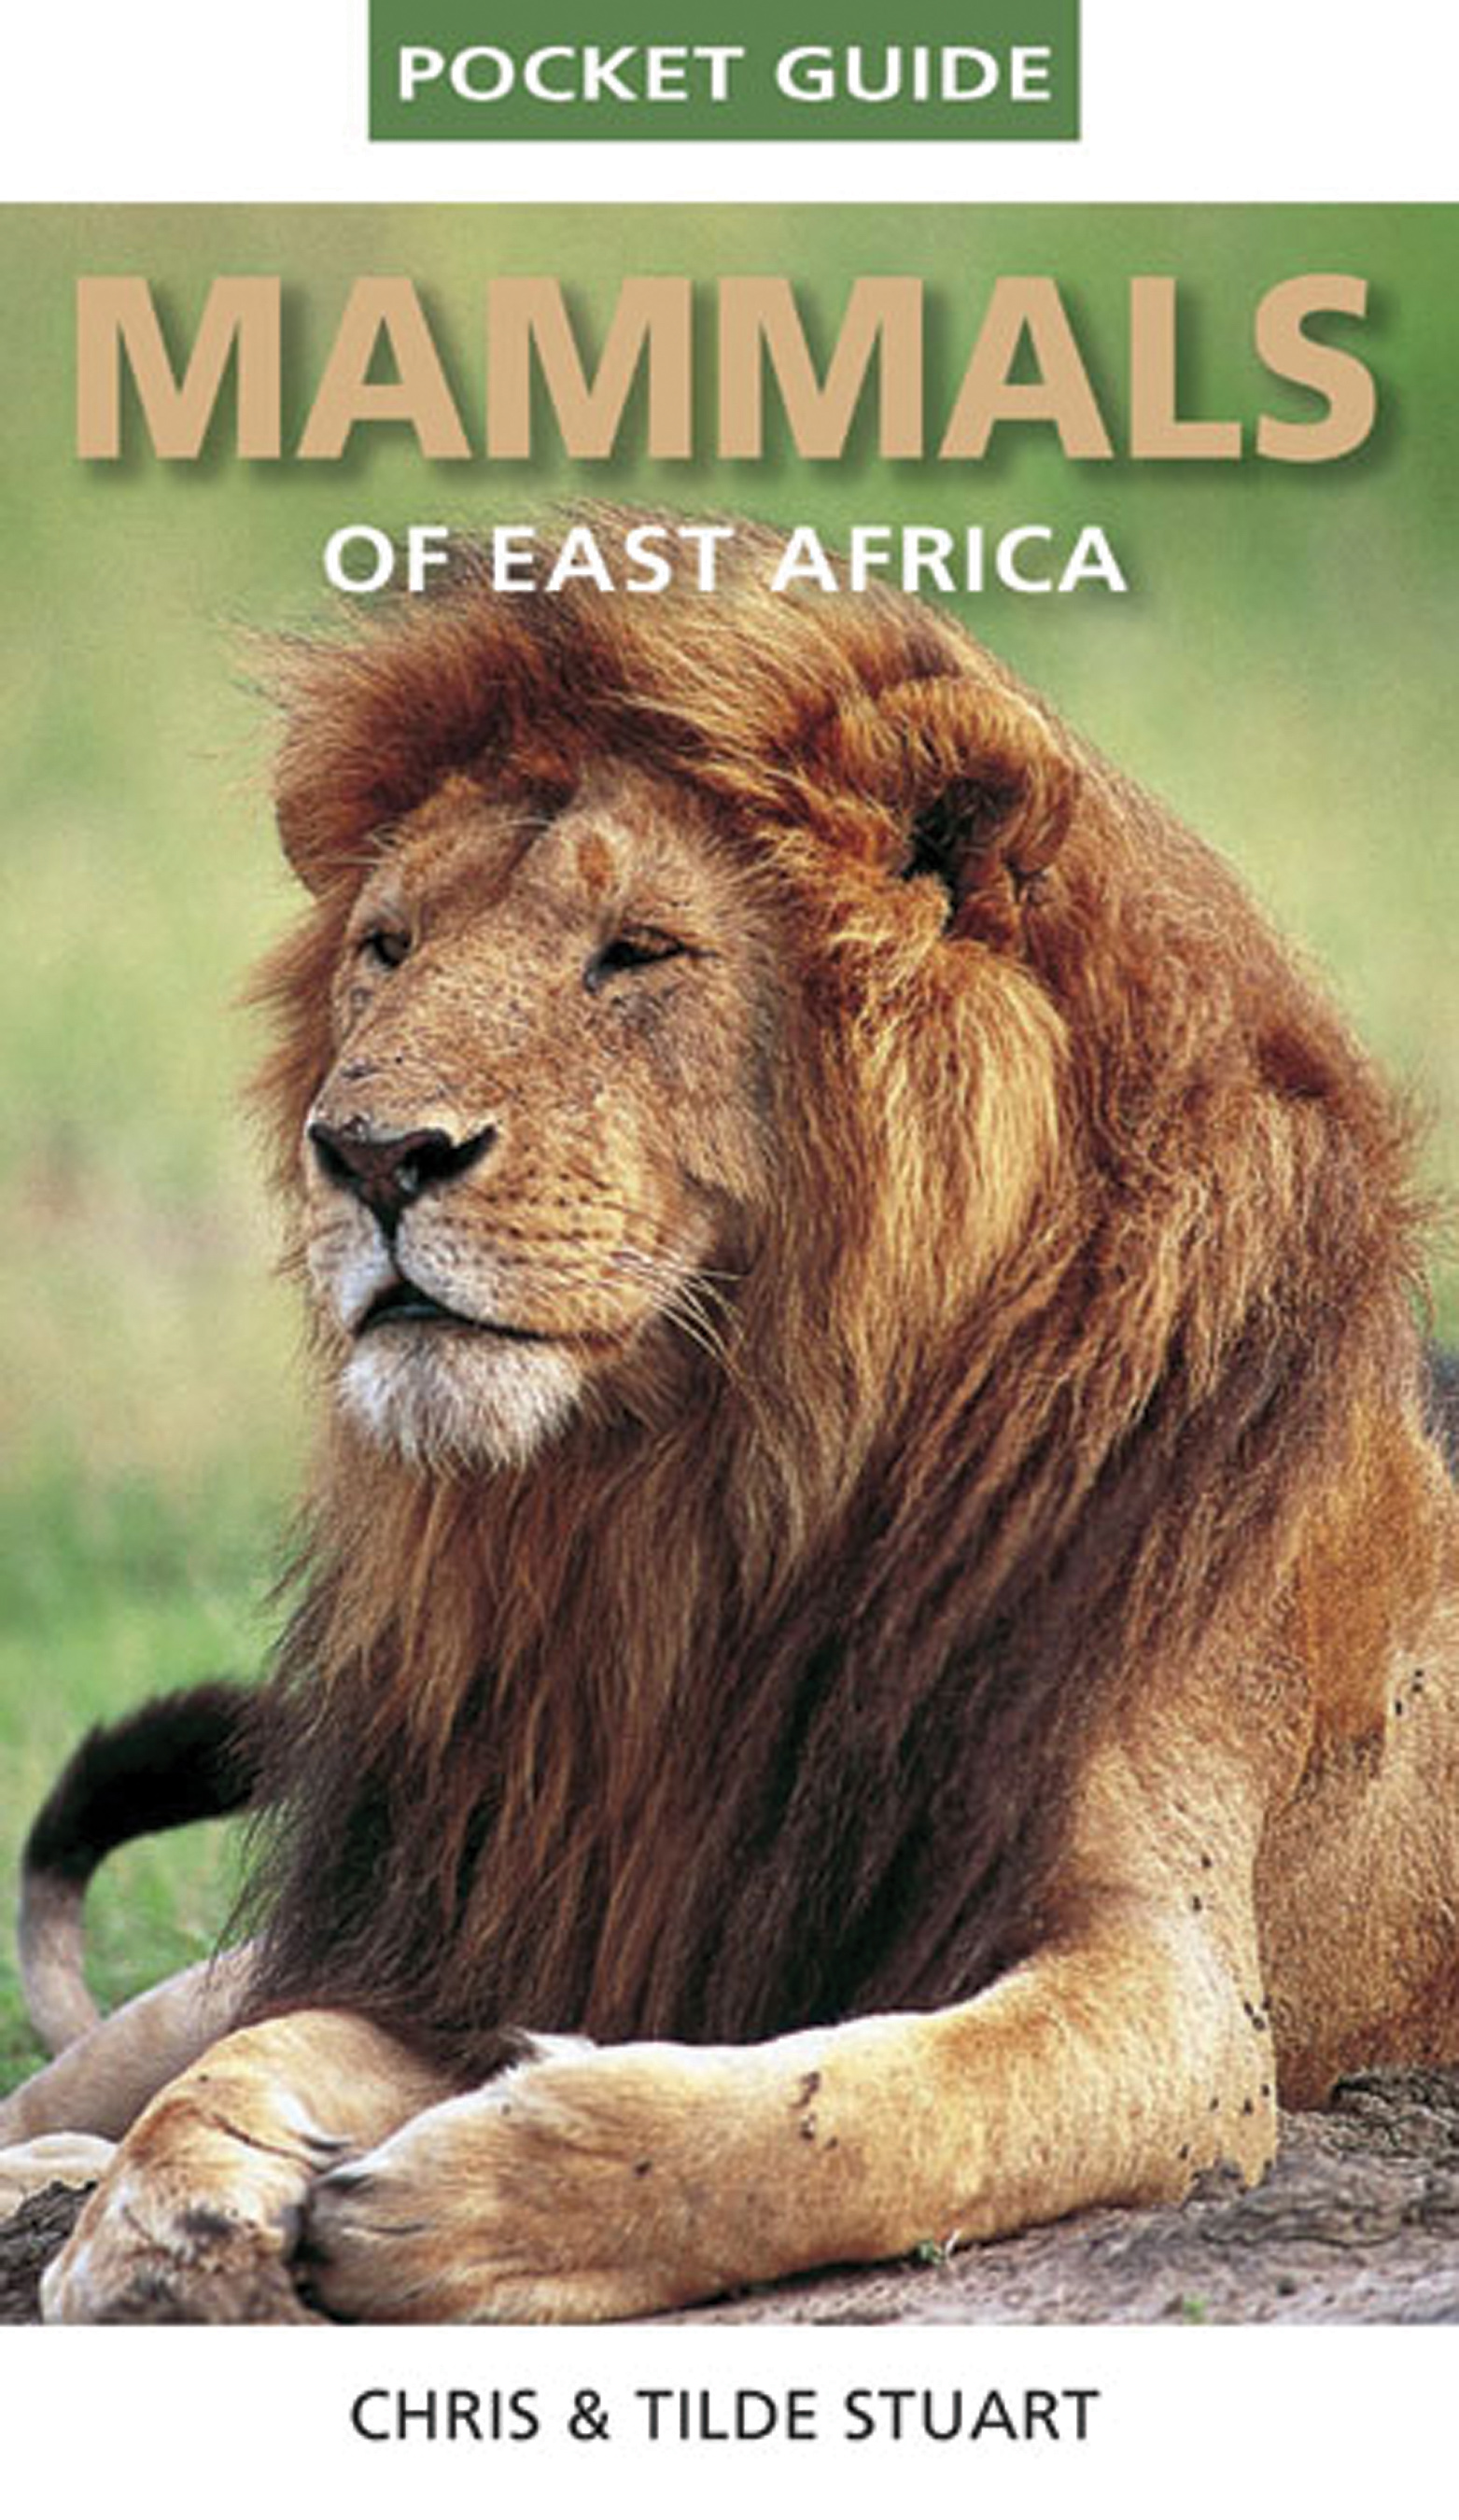 Pocket Guide: Mammals Of East Africa